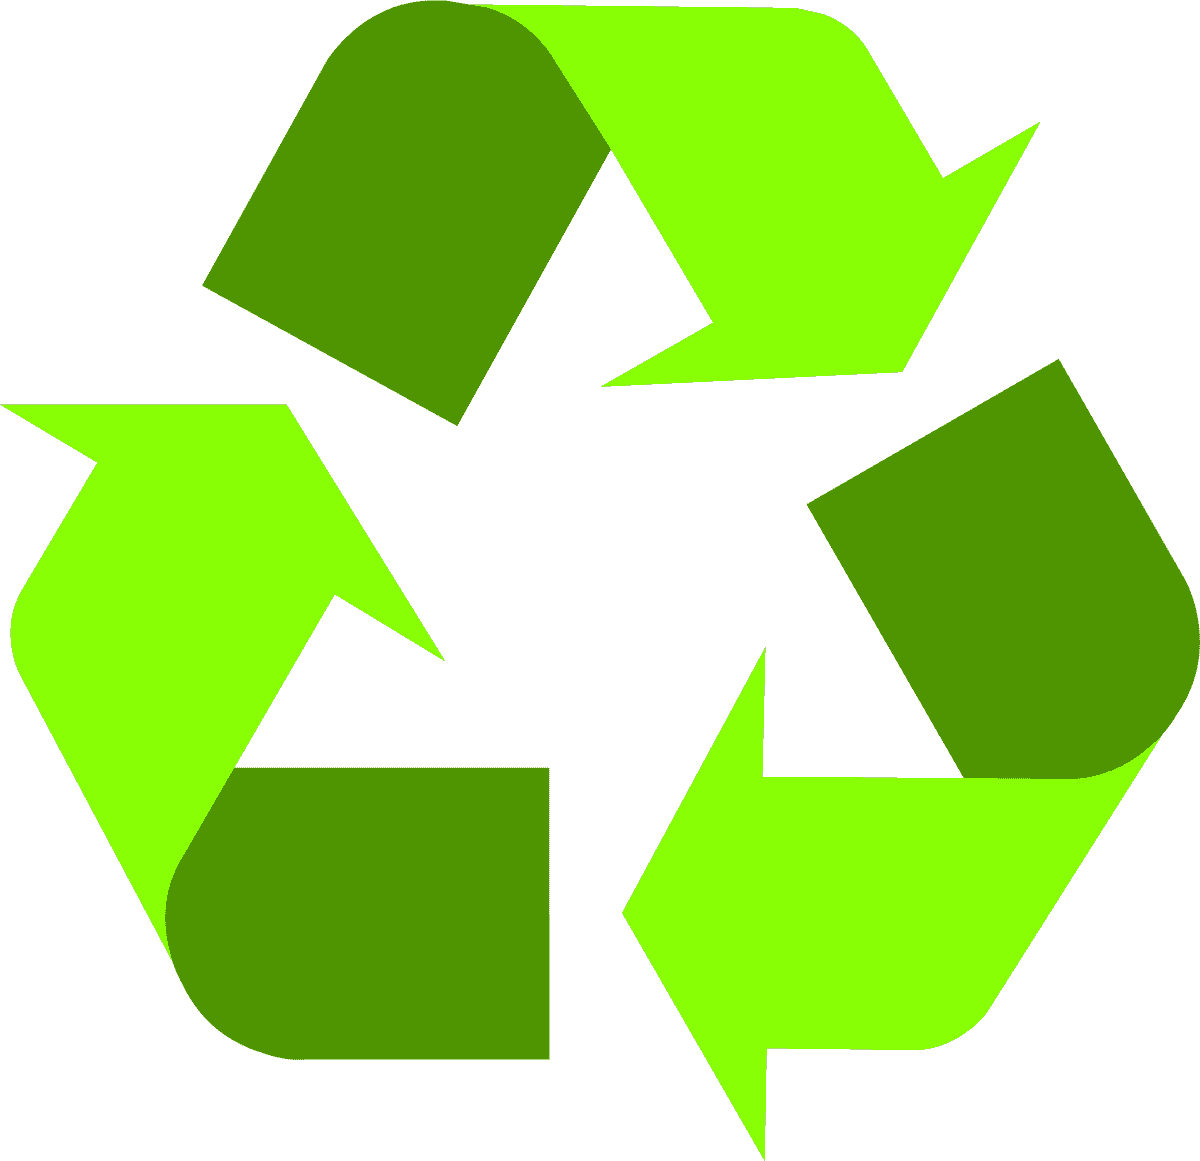 recycling-symbol-icon-twotone-light-green